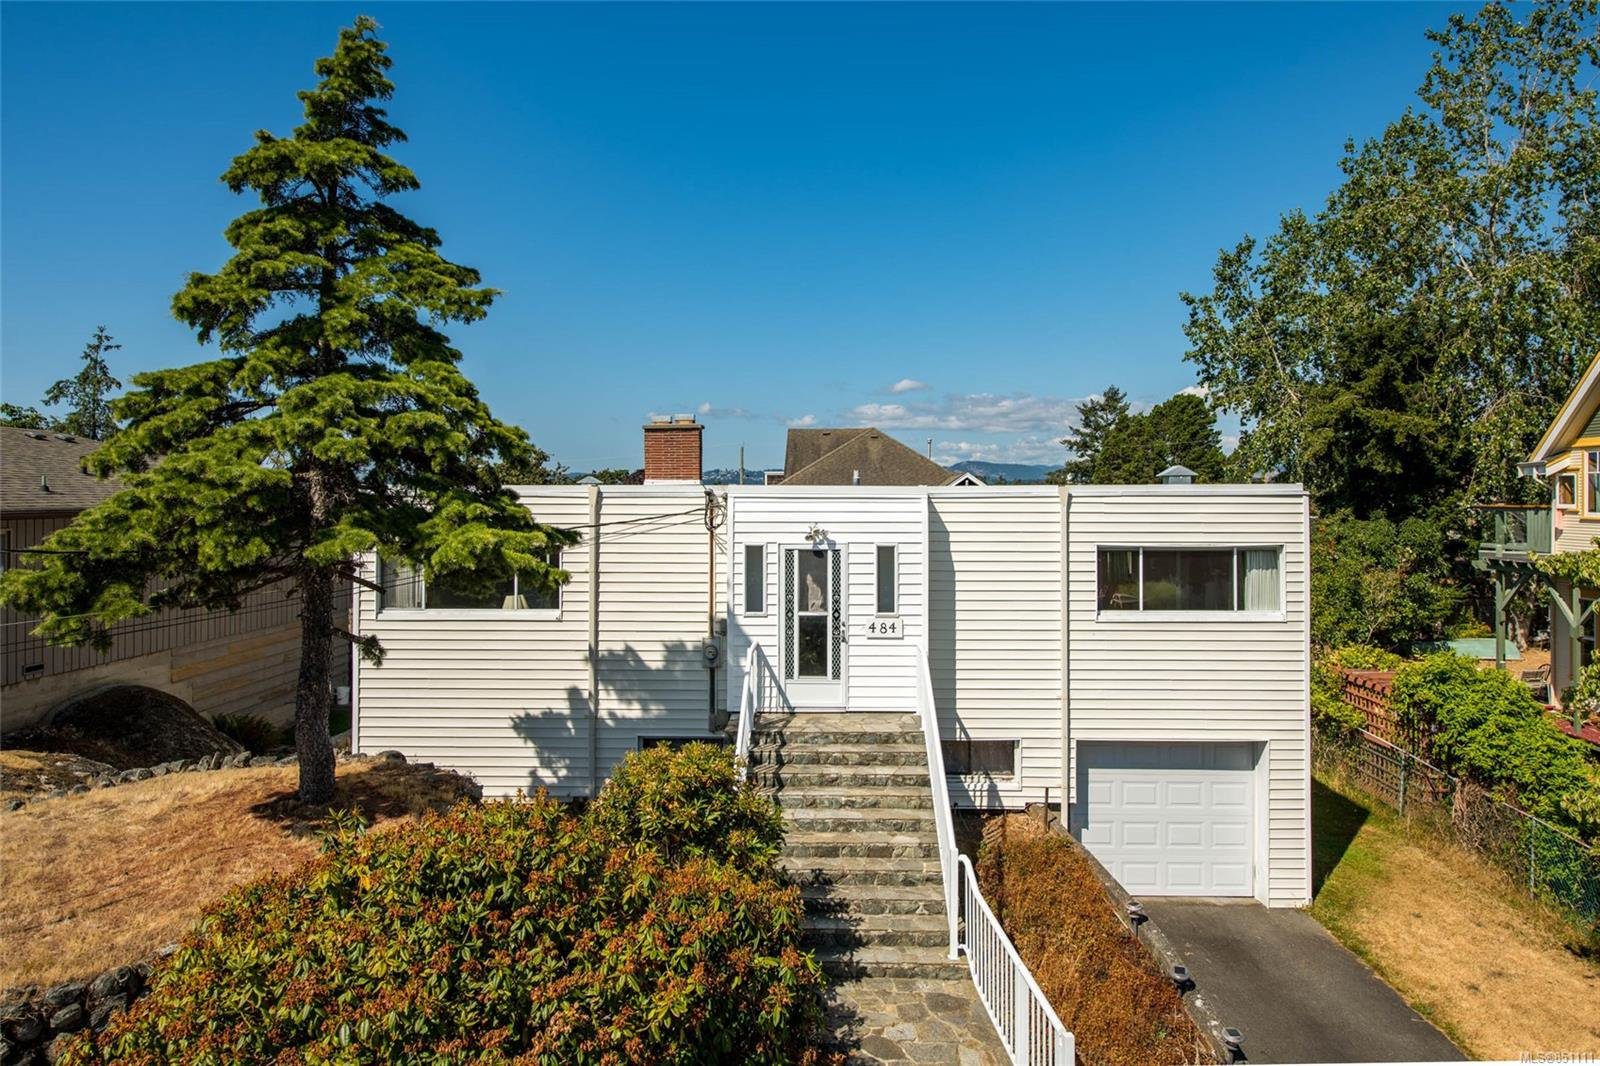 Main Photo: 484 Admirals Rd in : Es Saxe Point House for sale (Esquimalt)  : MLS®# 851111